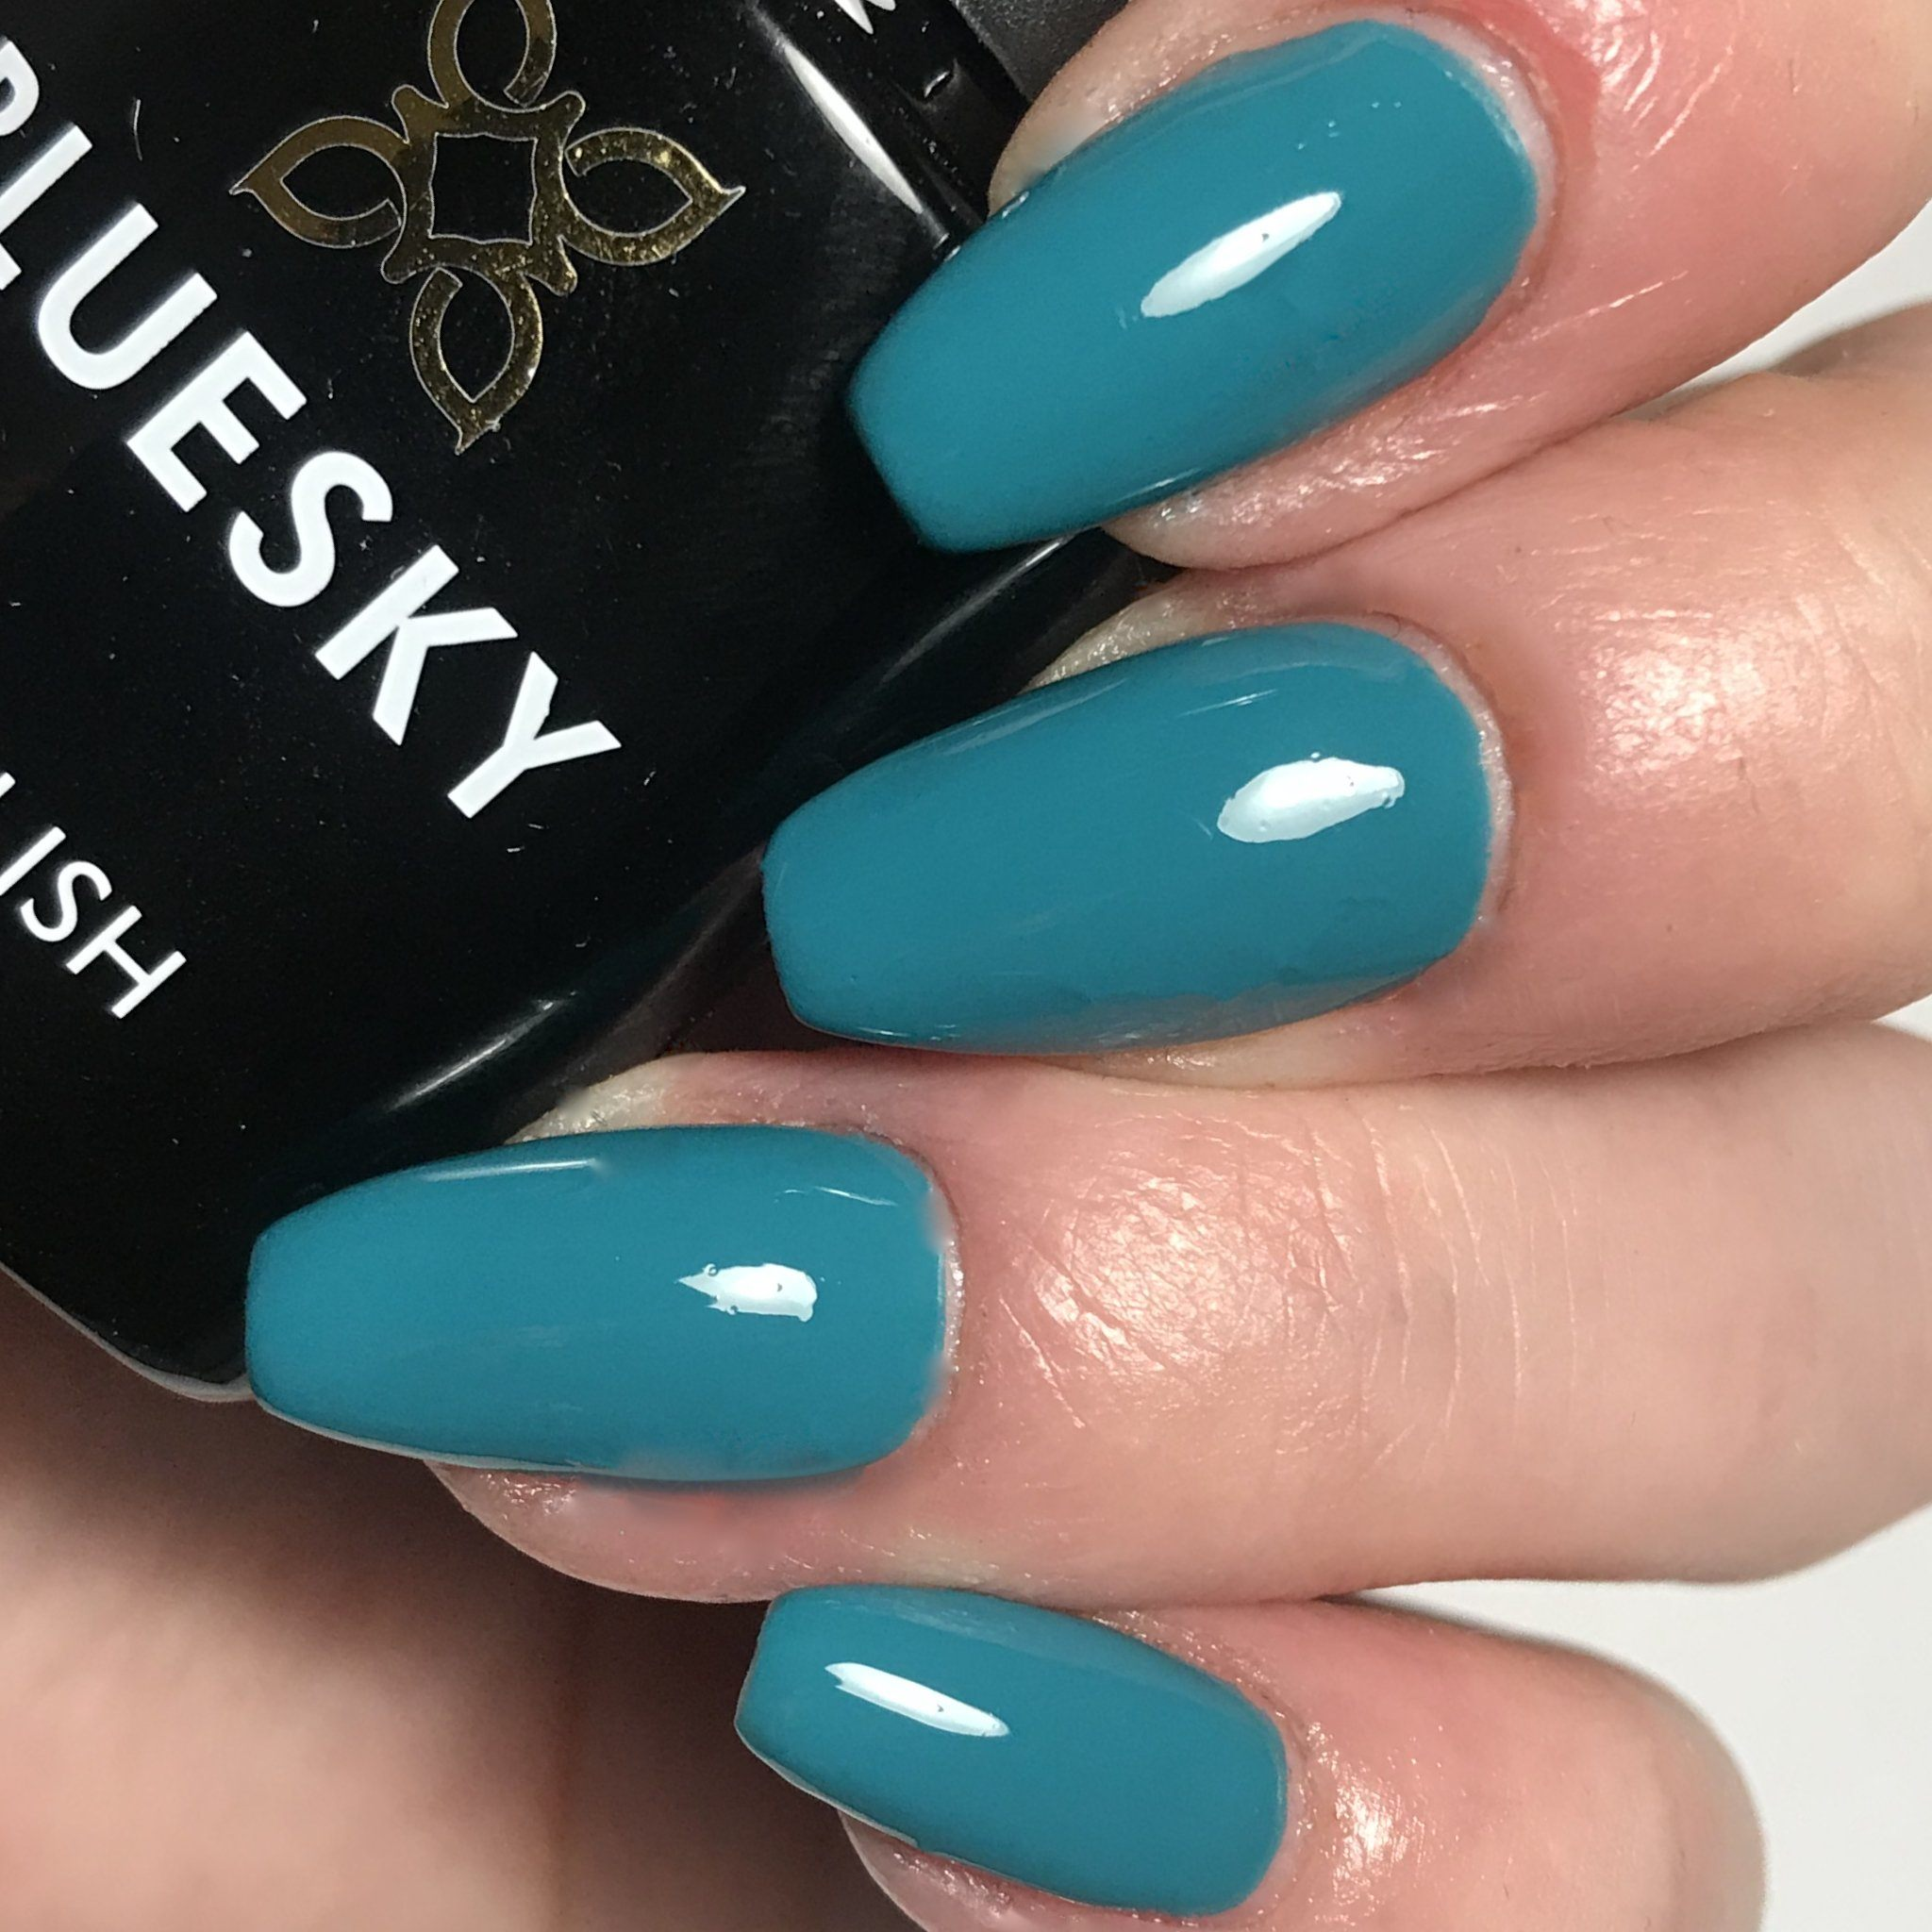 Bluesky QXG RANGE Dark Teal QXG 77 UV/LED Soak Off Gel Nail Polish! - Bluesky Nail Gel Polish